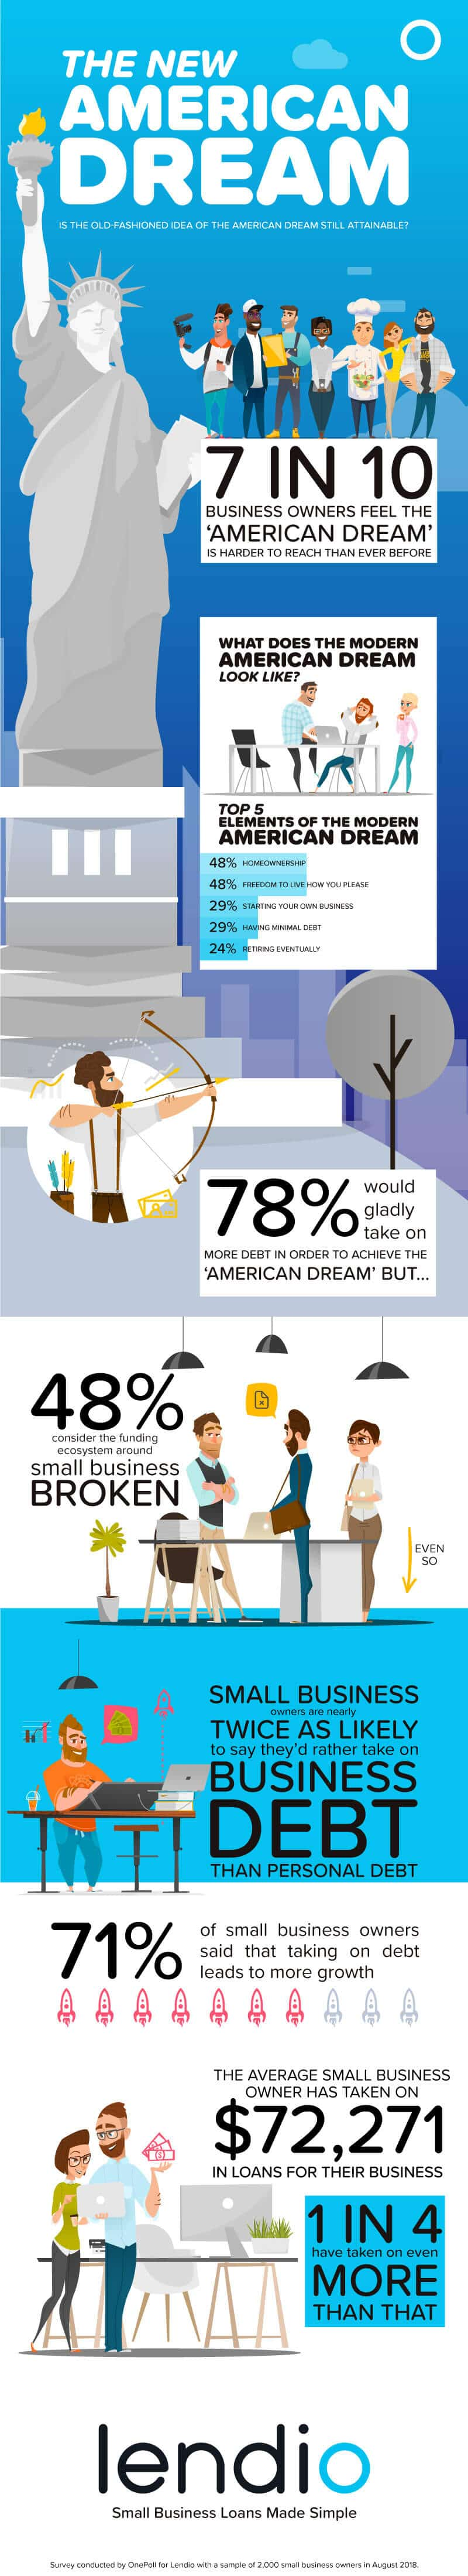 Small Business Owners: American Dream Is out of Reach